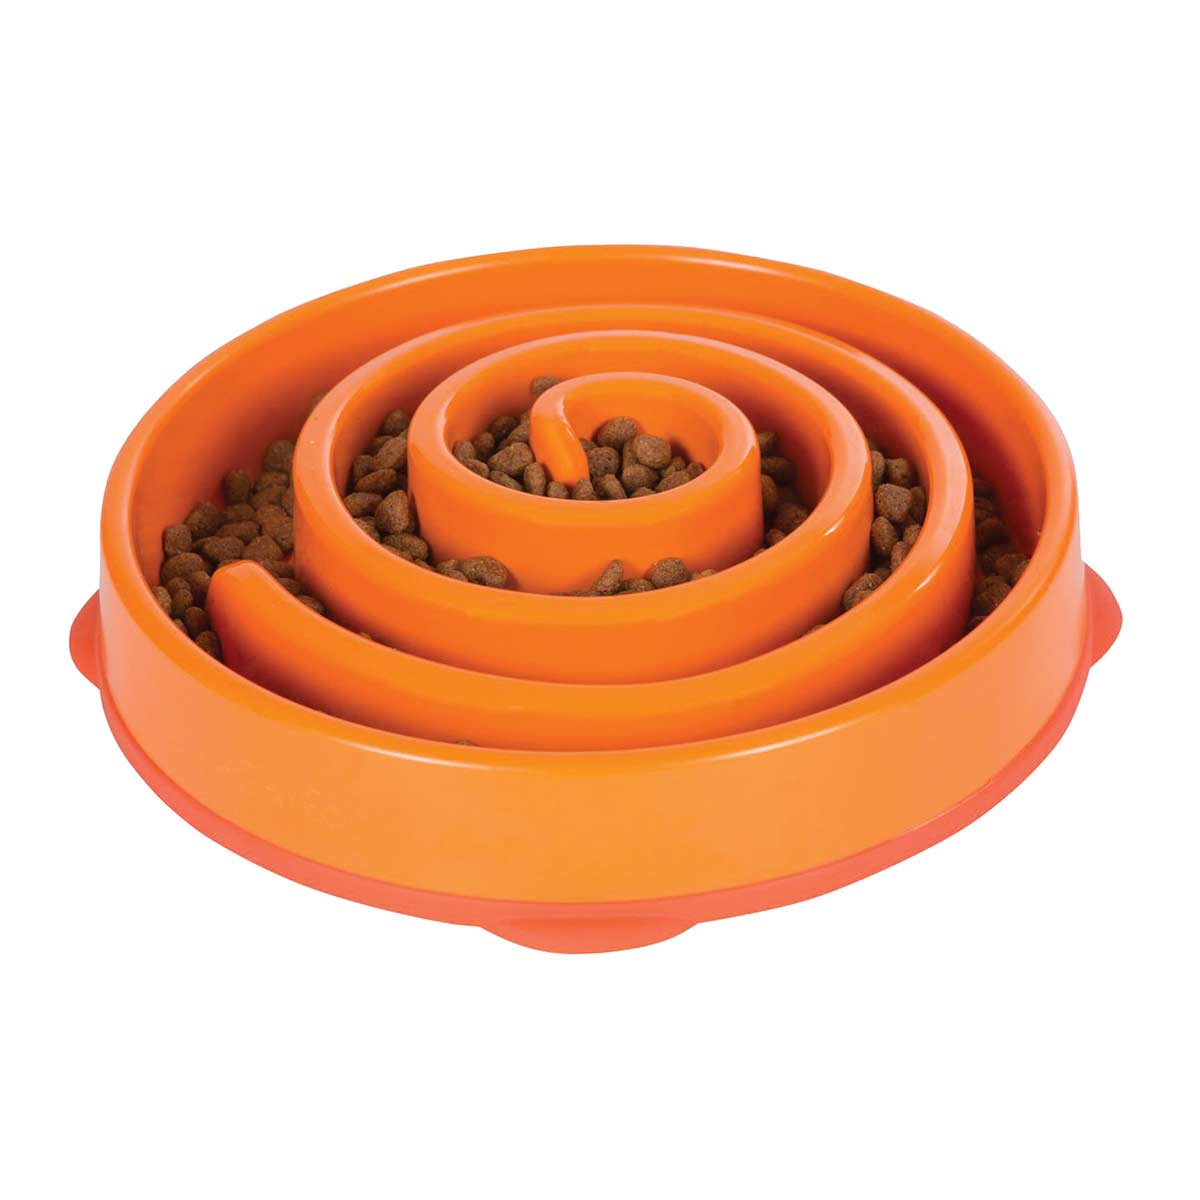 Outward Hound Slo-Bowl Coral Reg 12